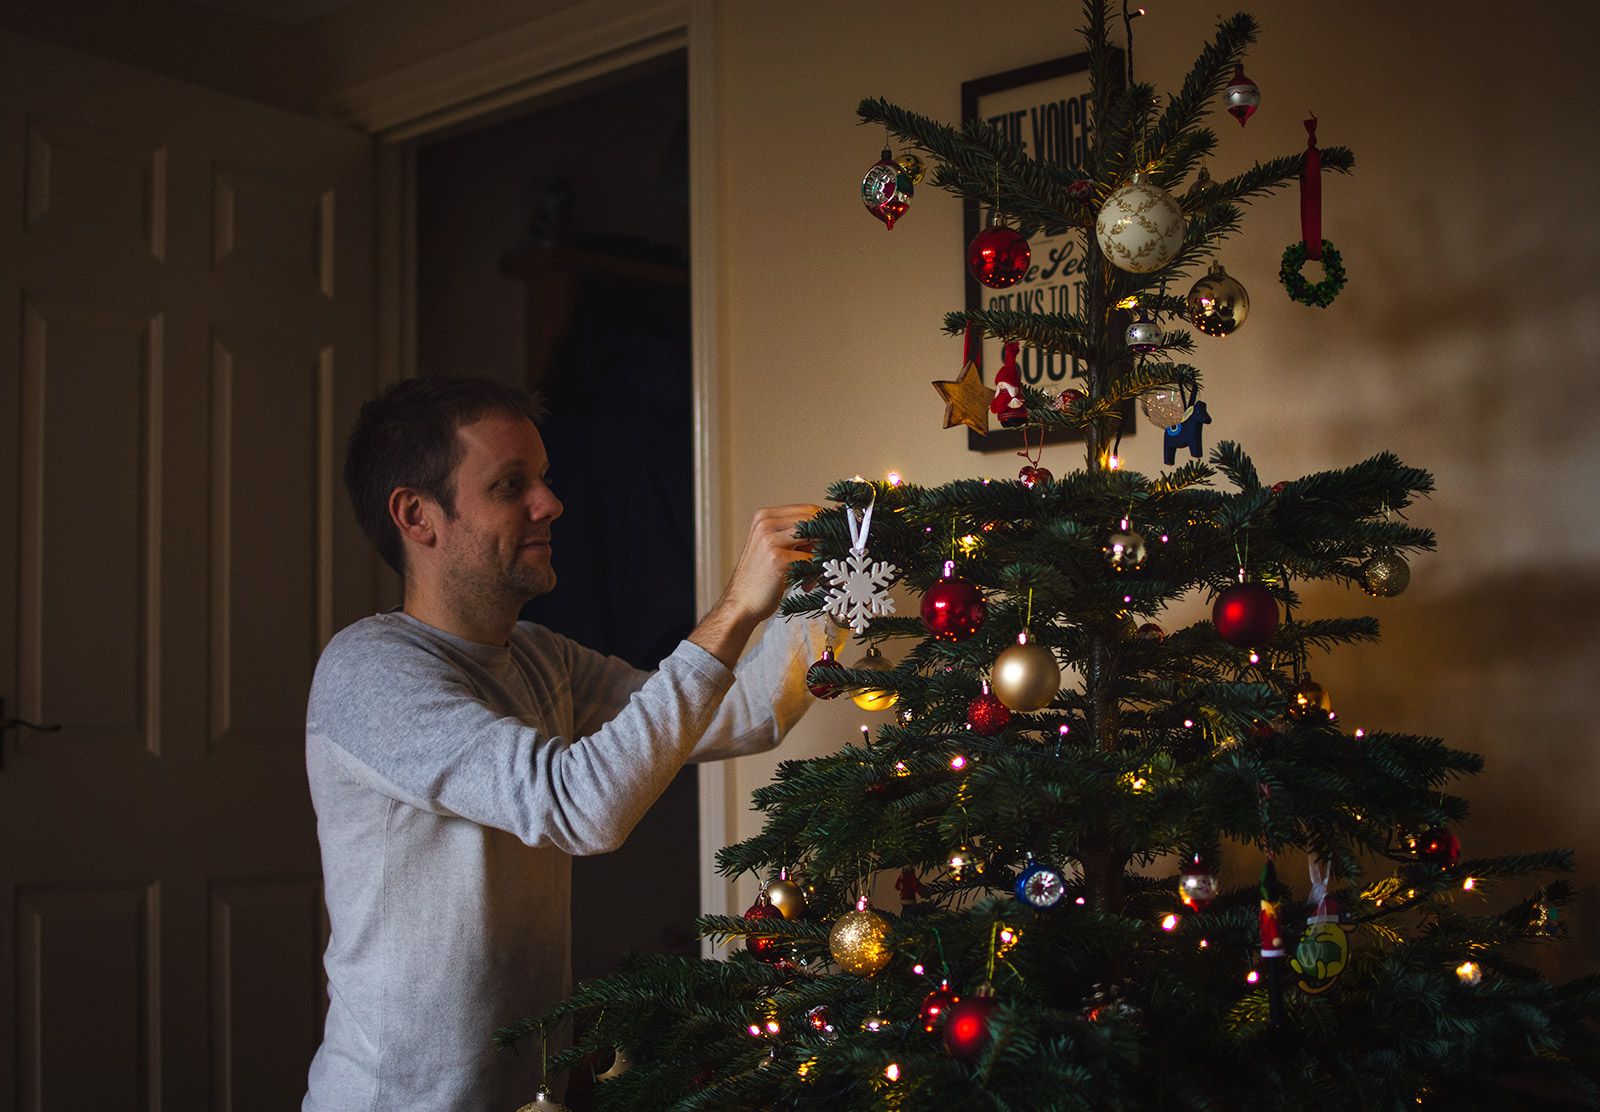 Man decorating tree